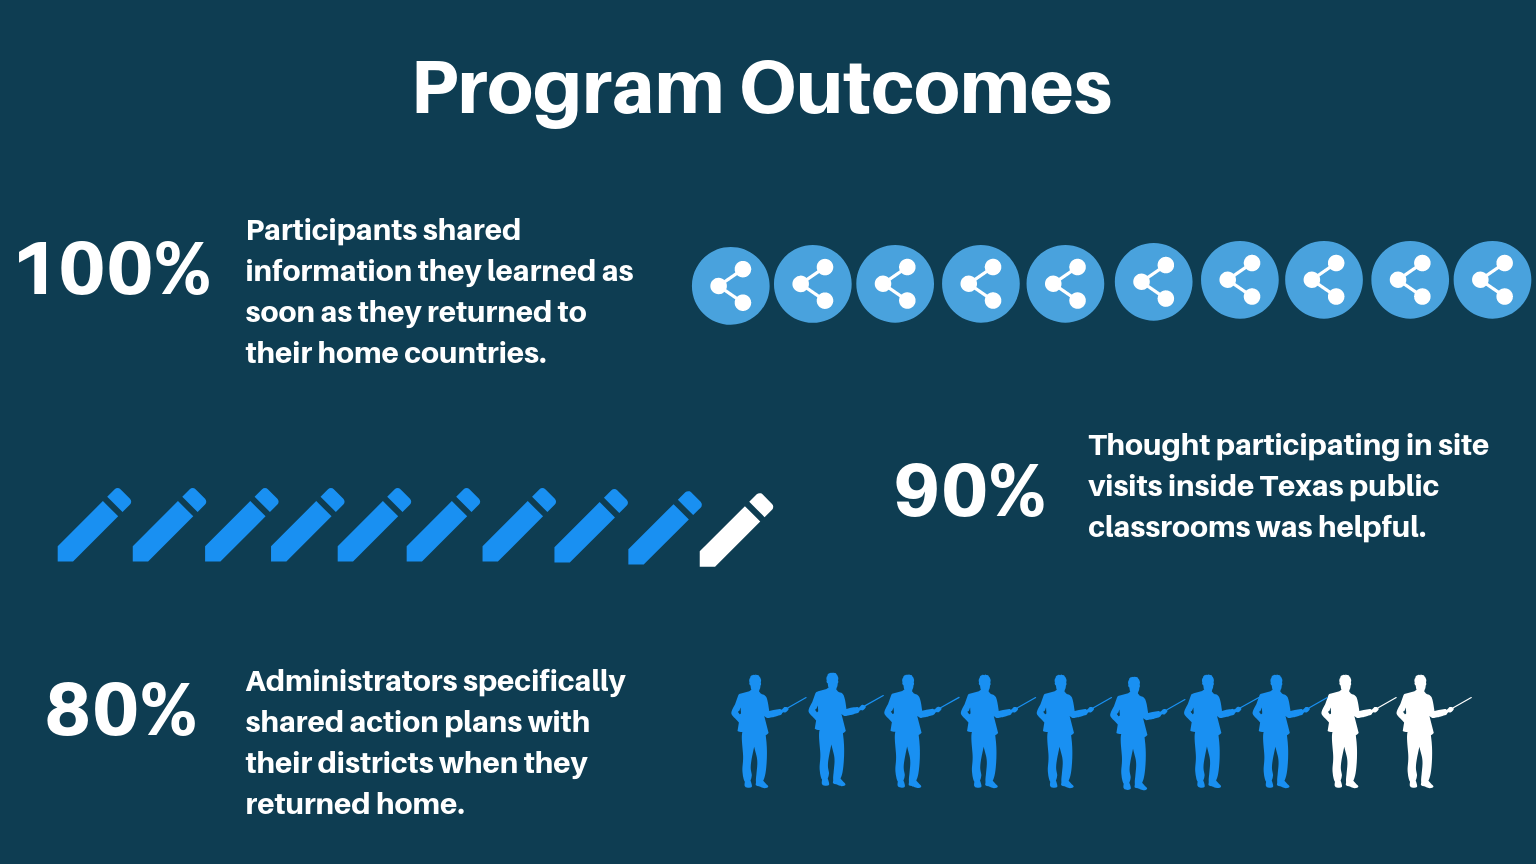 NEA Program Outcomes.png